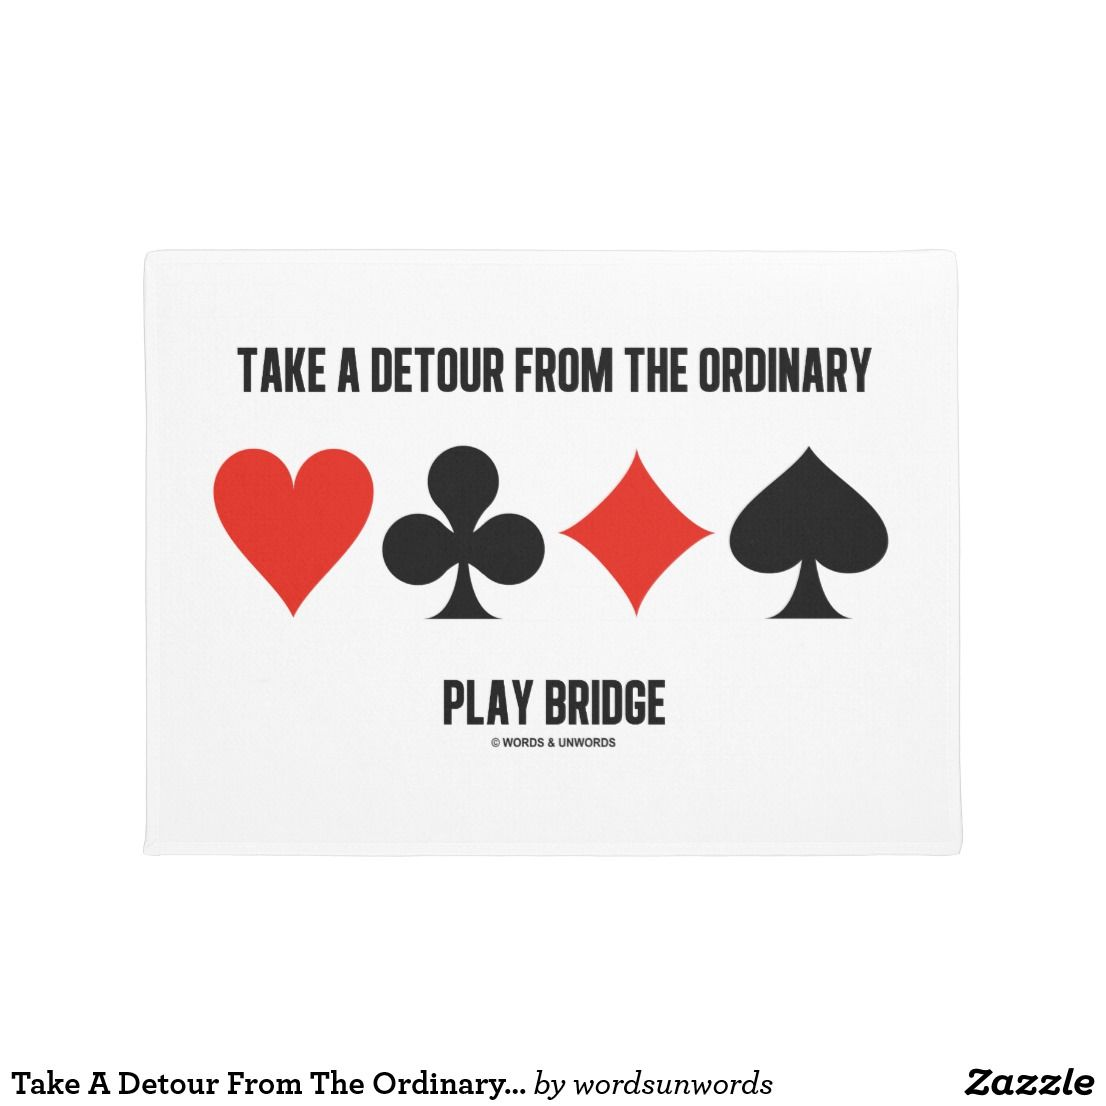 Detour from the ordinary play bridge 4 card suits play